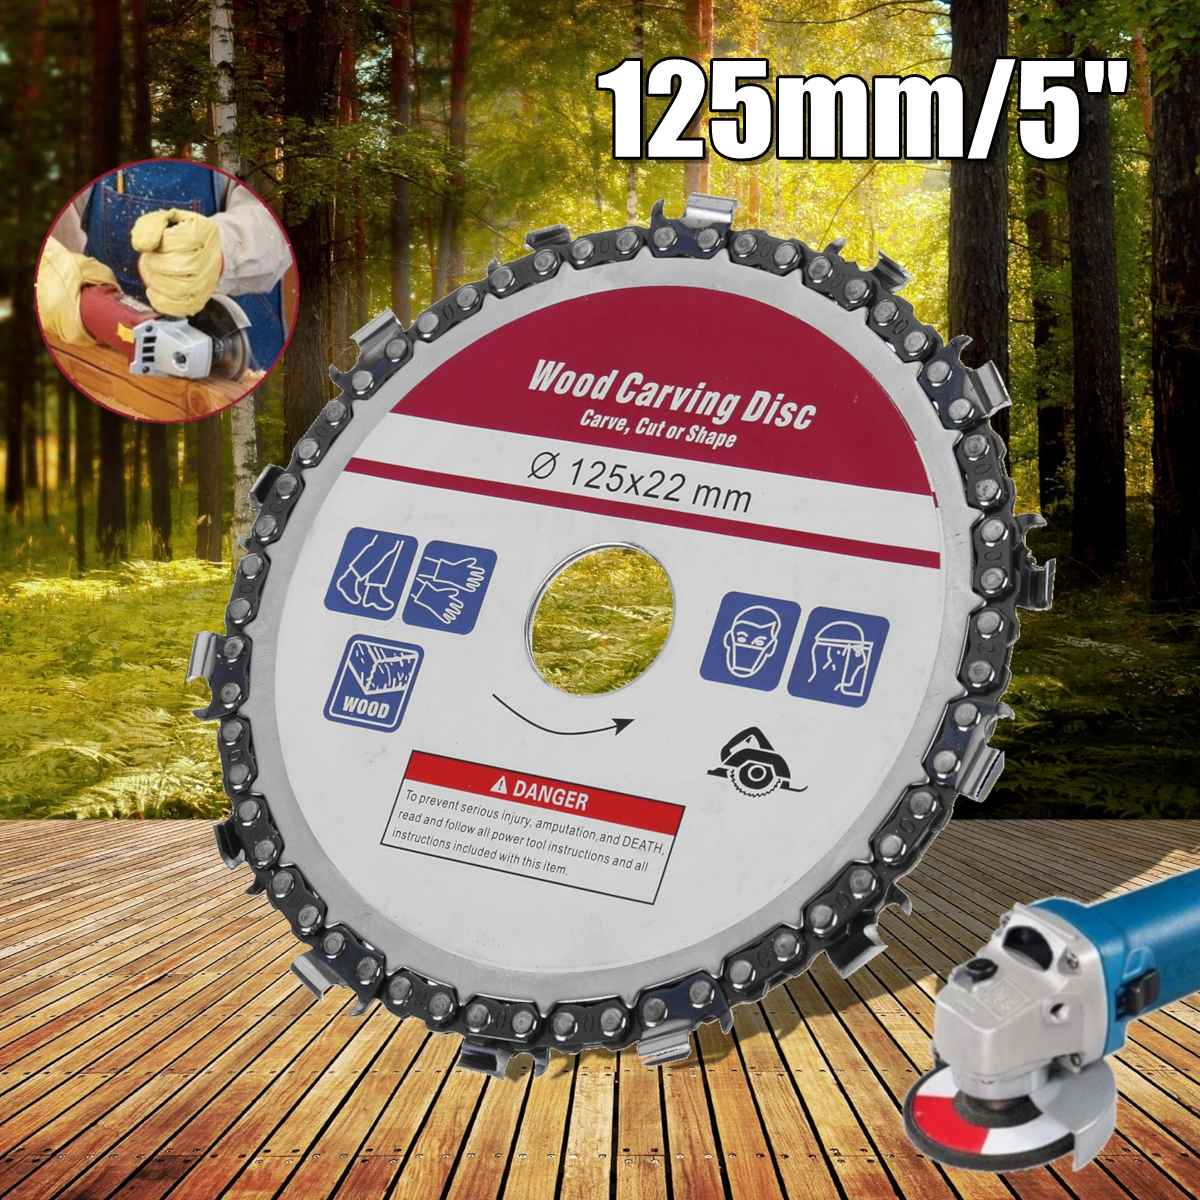 Doersupp Upgrade 5 Inch Grinder Disc And Chain 14 Tooth Fine Abrasive Cut Chain For 125mm Angle Grinder Power Tools Accessories